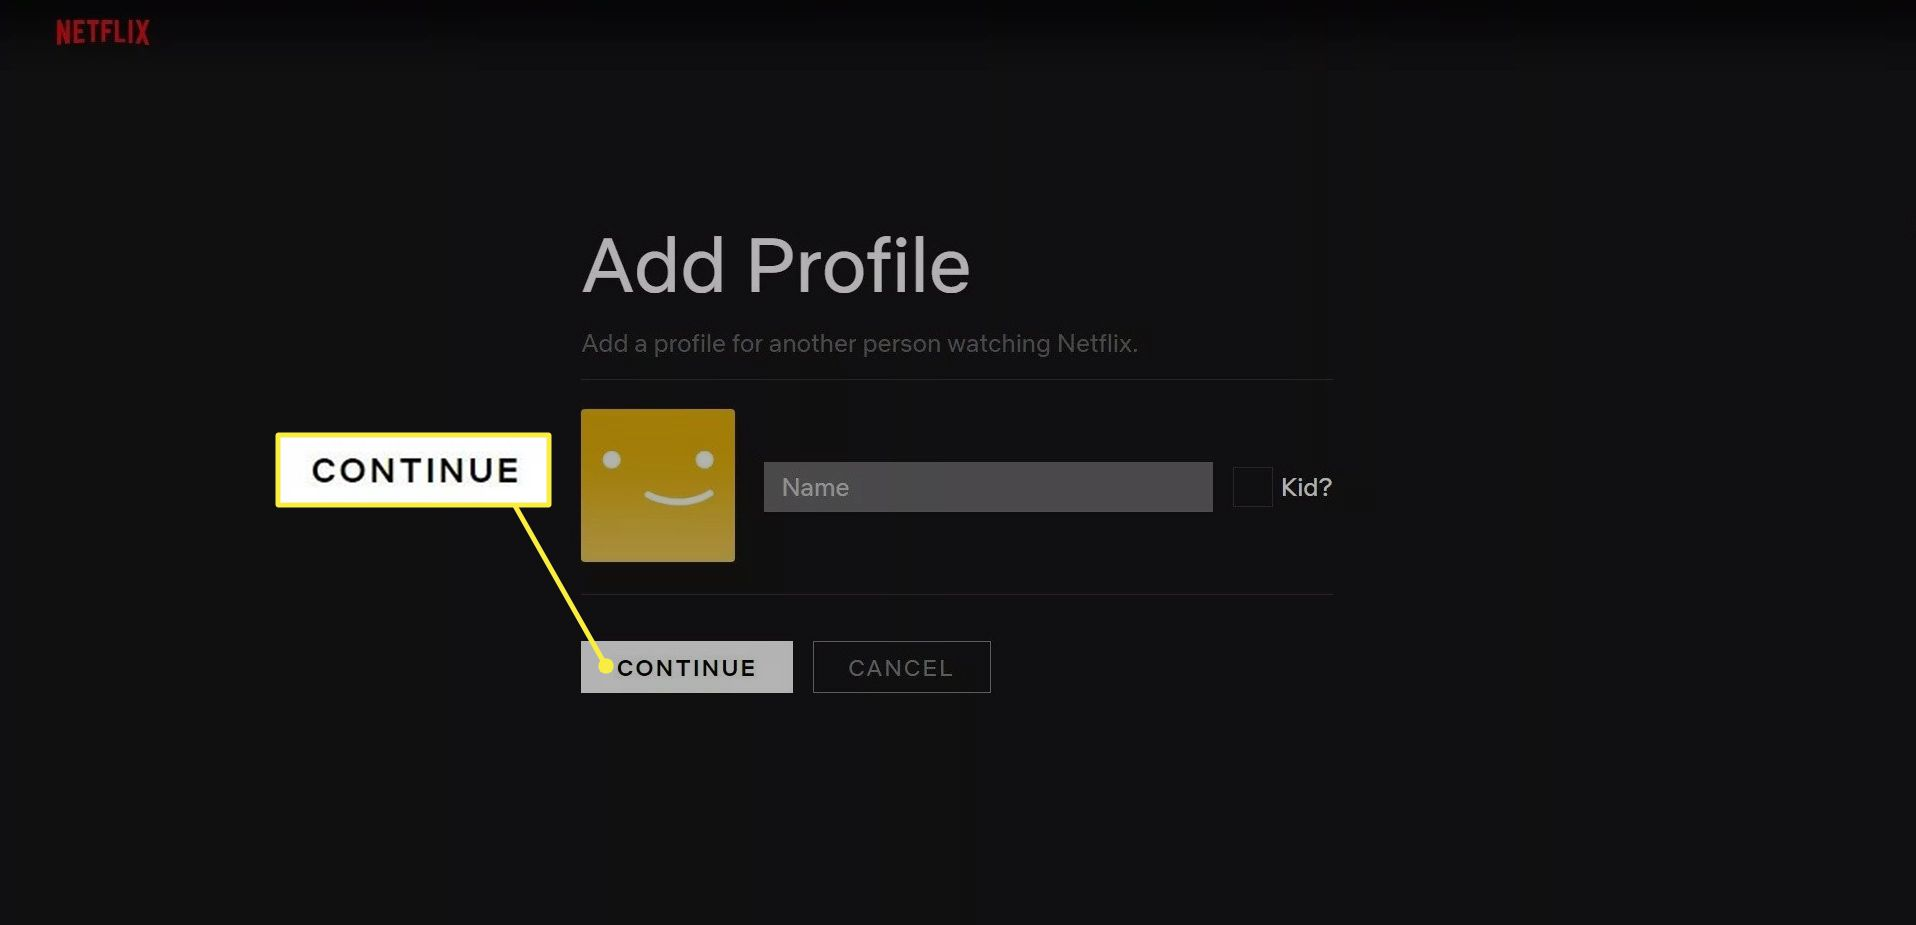 Continue on the Netflix Add Profile page